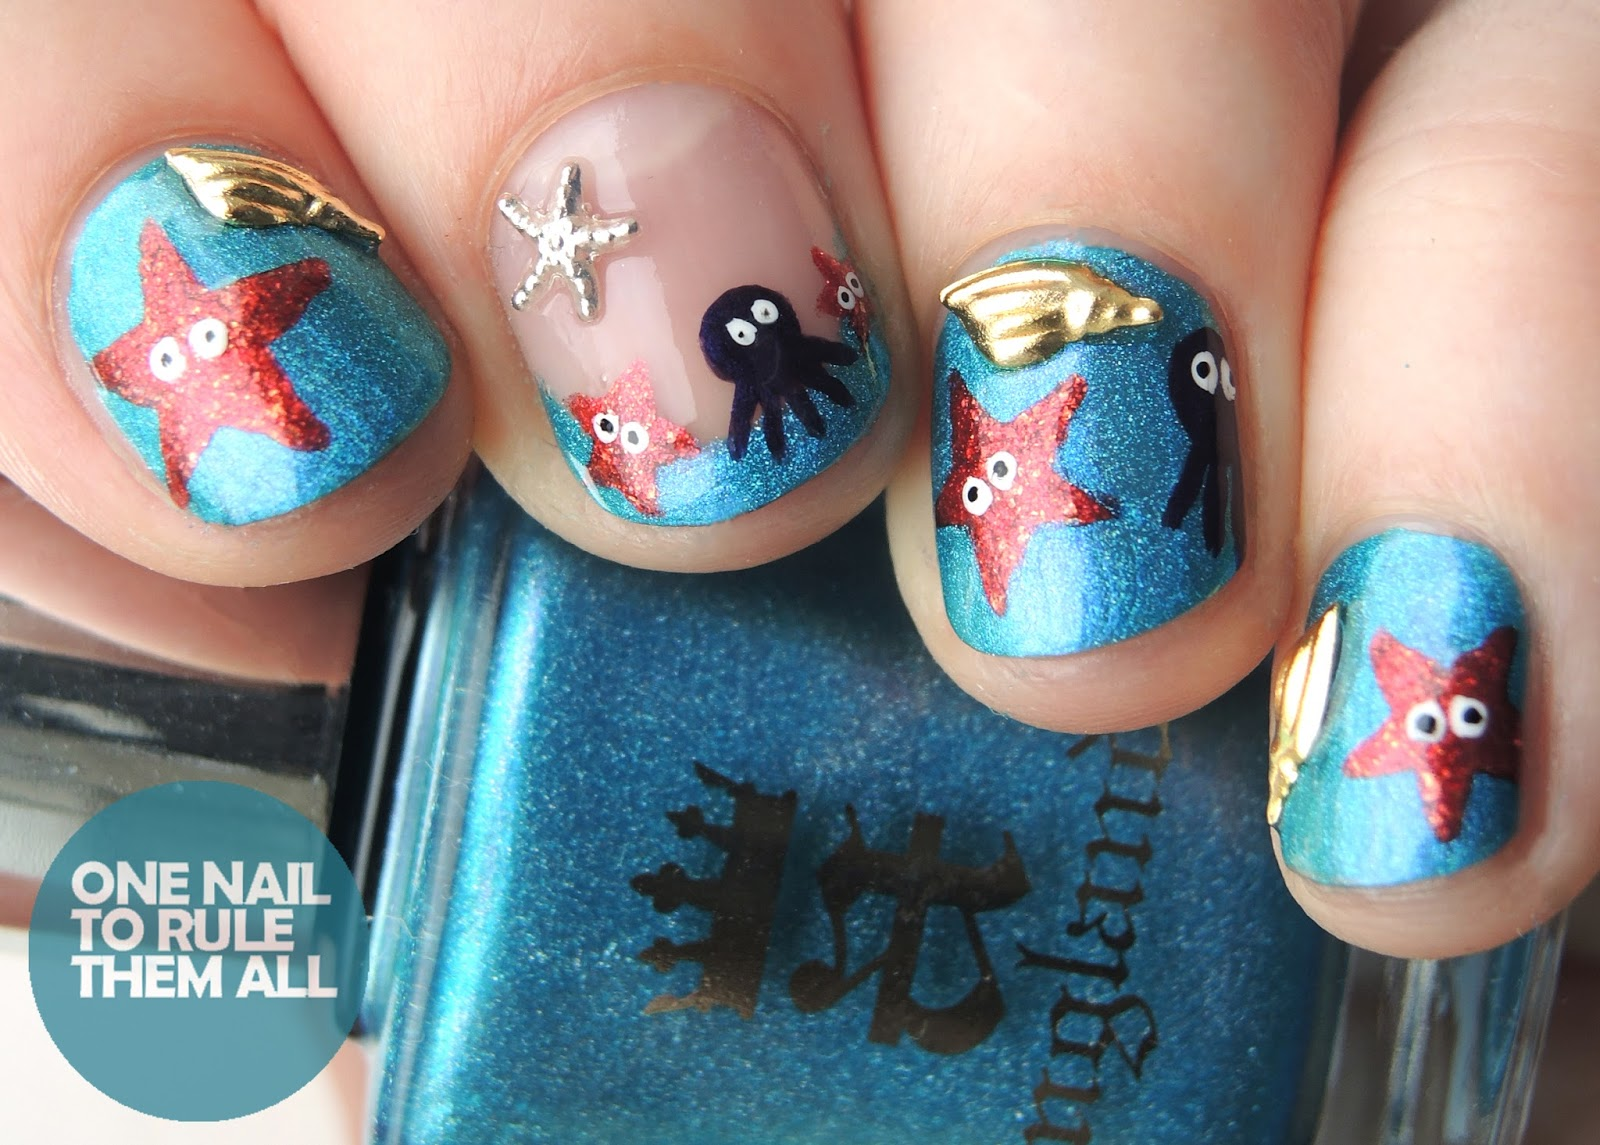 One Nail To Rule Them All: June Splash Meebox Review + Nail Art